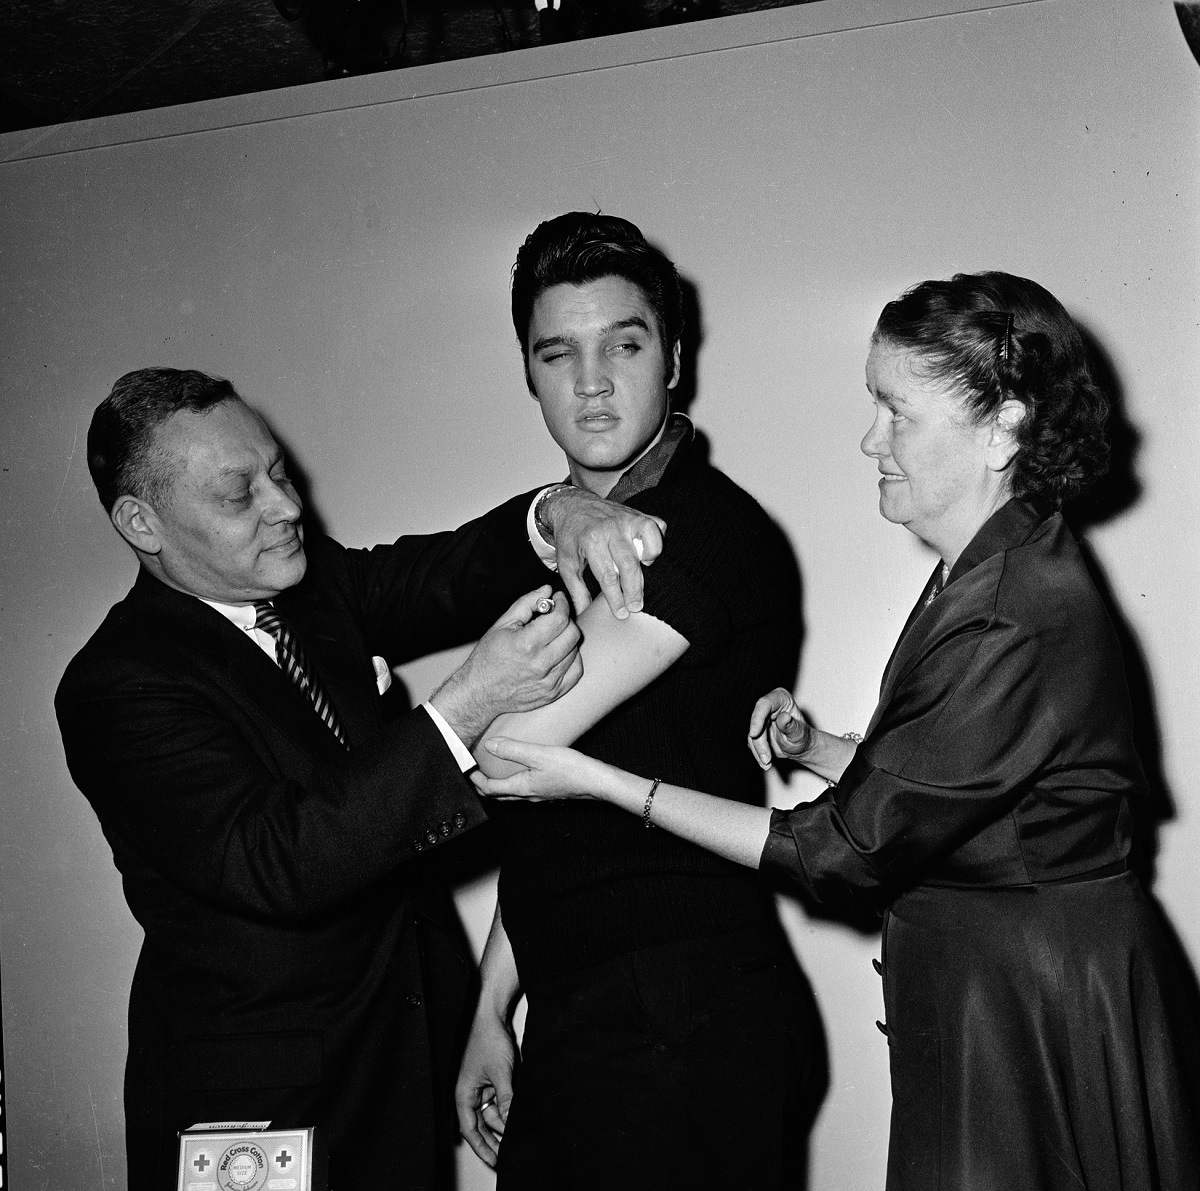 Elvis Presley getting the polio vaccine from two clinicians in 1956 before his performance on 'The Ed Sullivan Show'